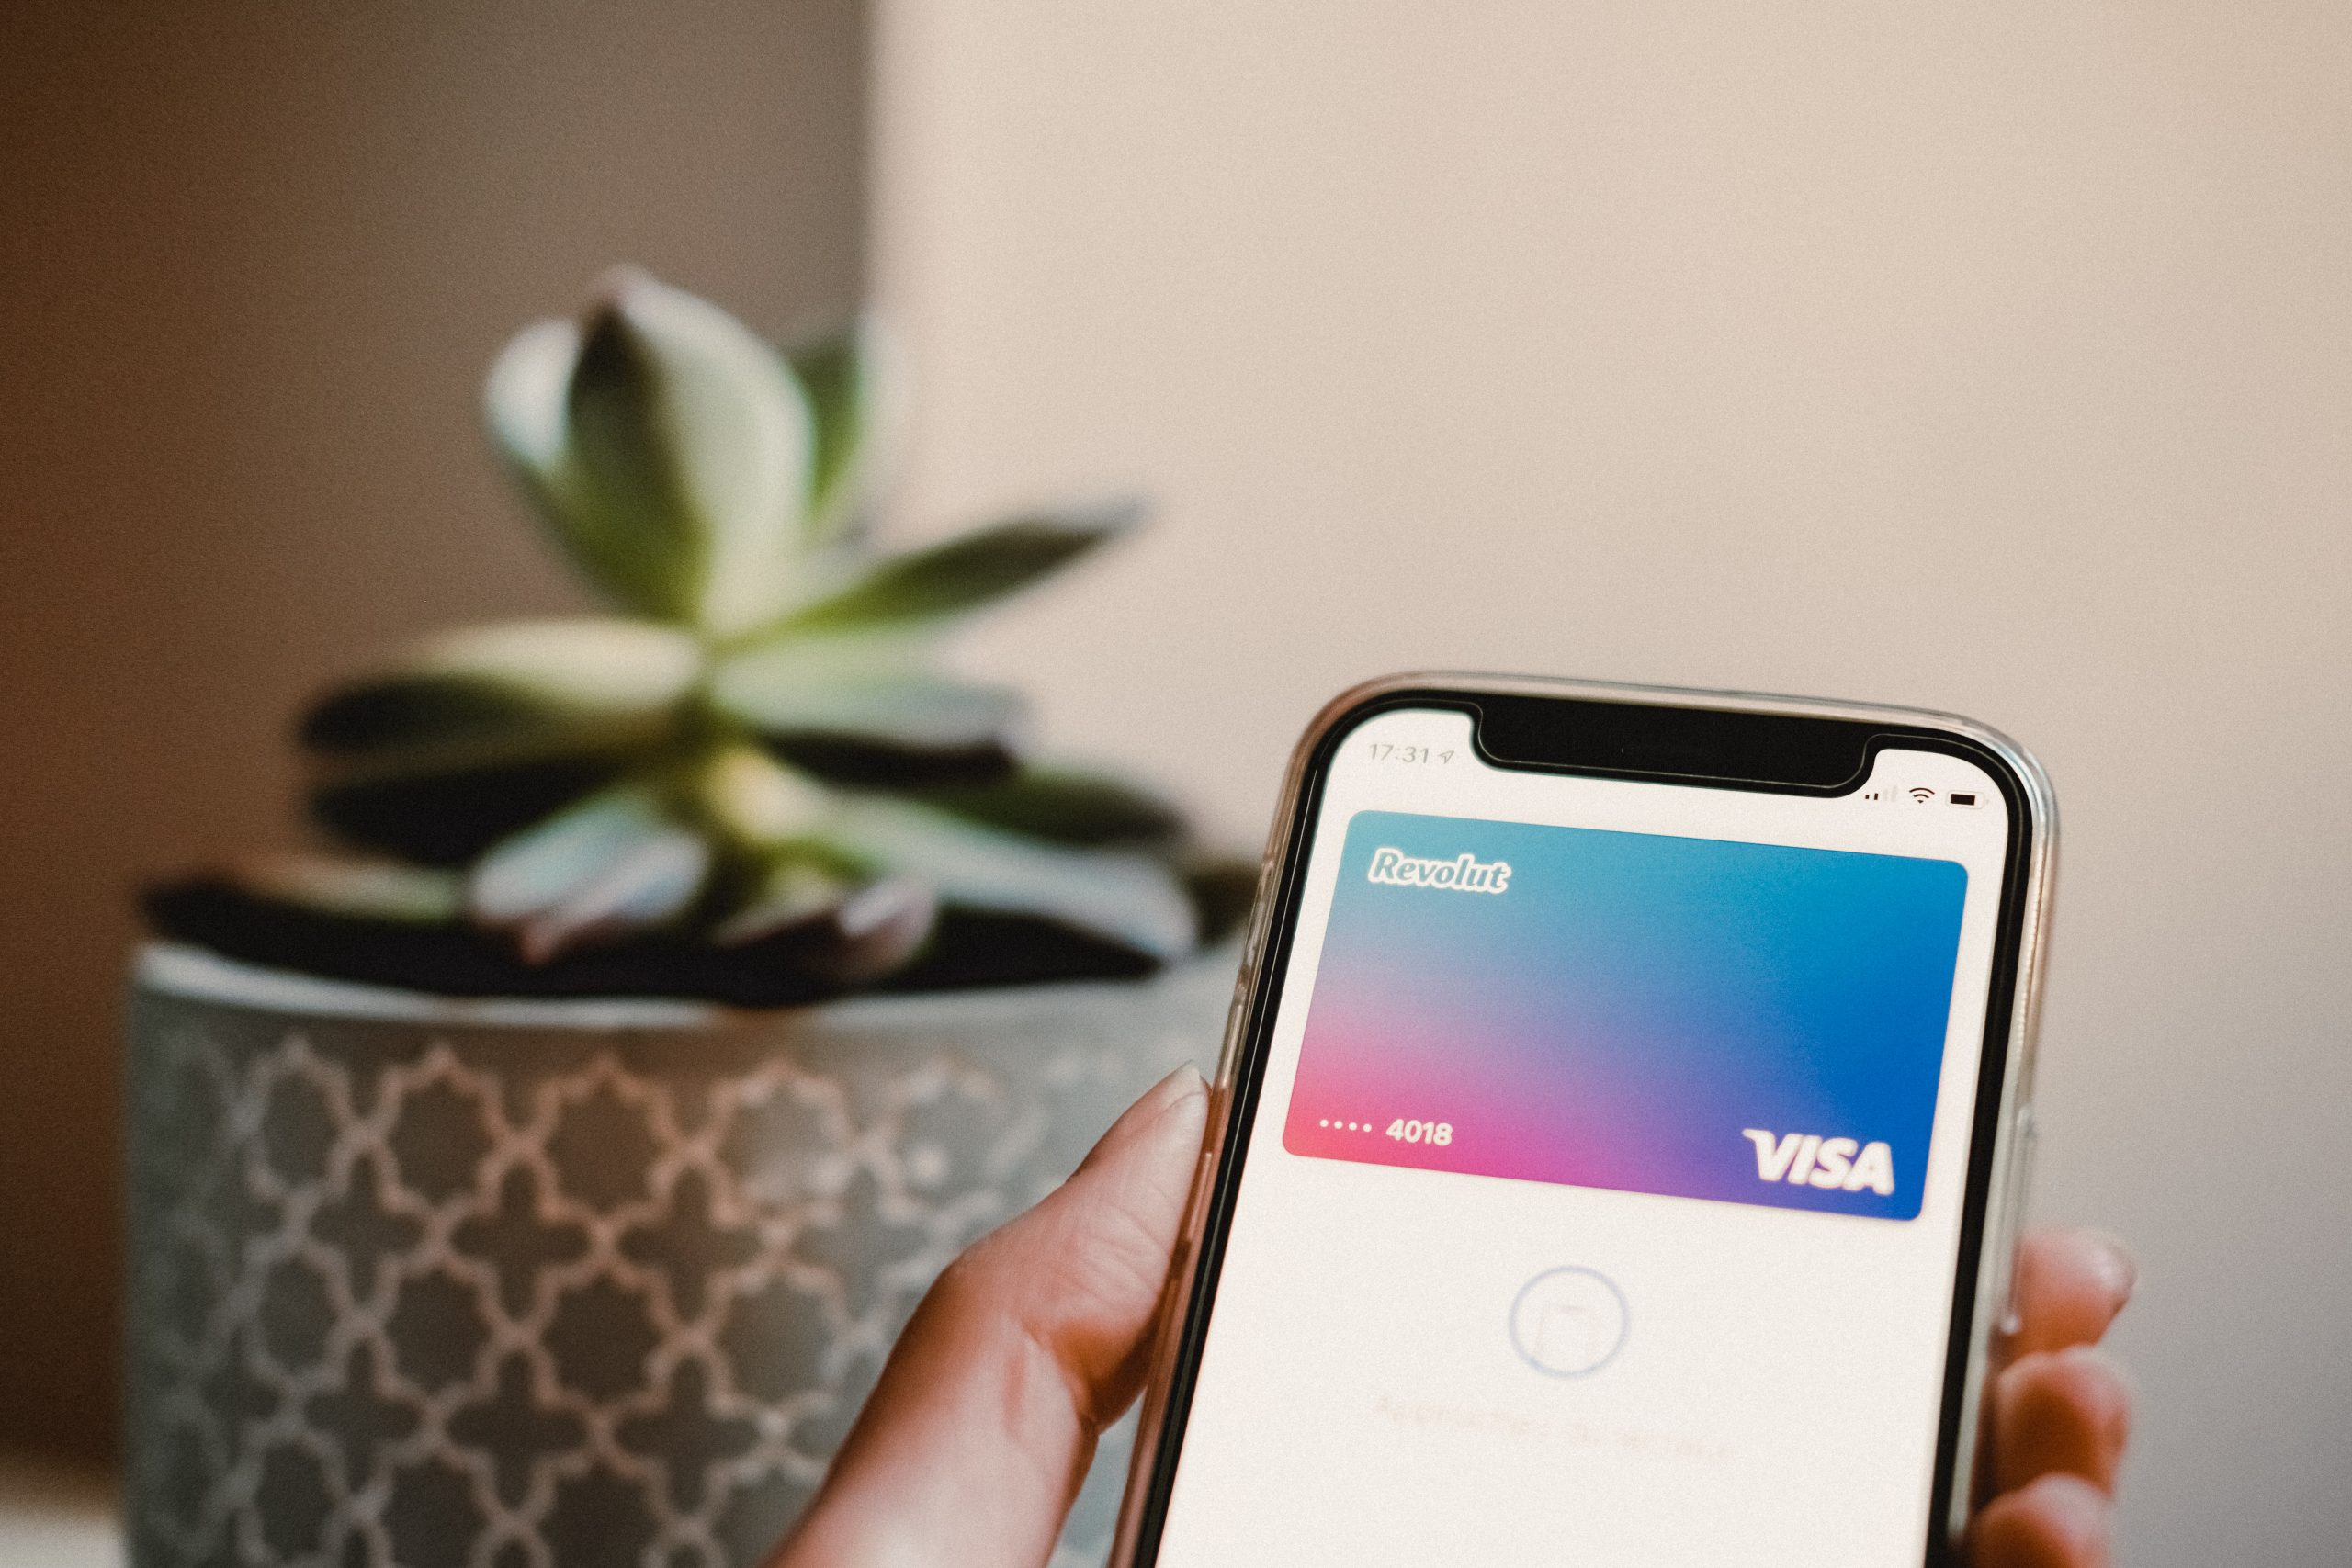 hand holding mobile phone with revolut app open